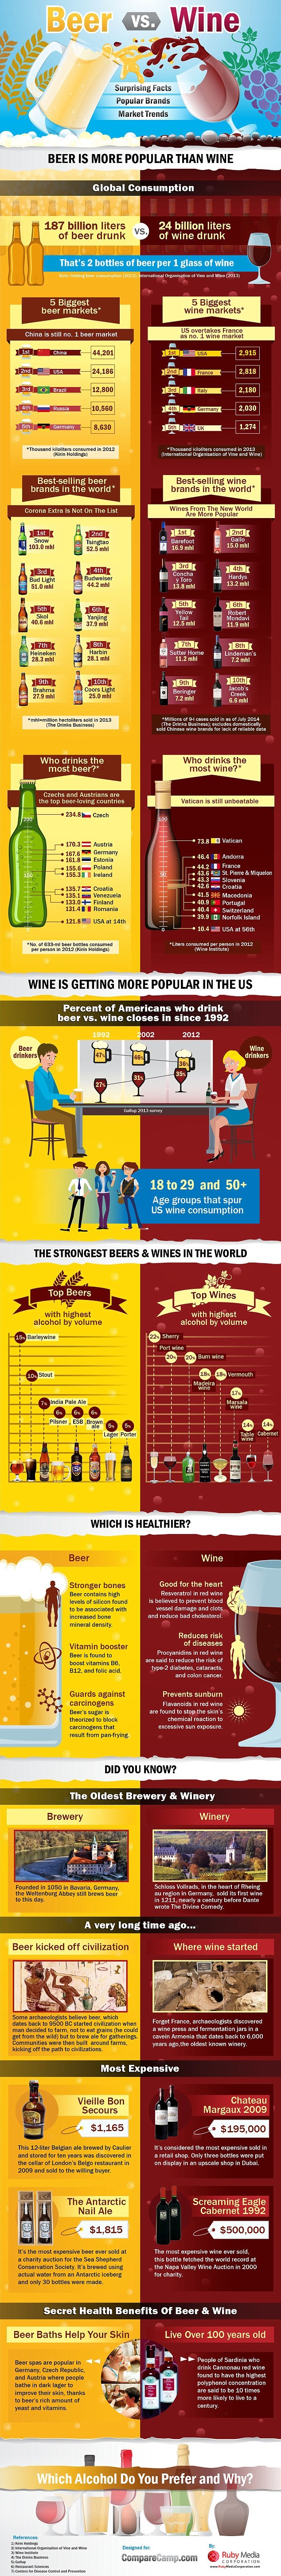 Graphic: Beer Beats Wine in Quest for World Domination